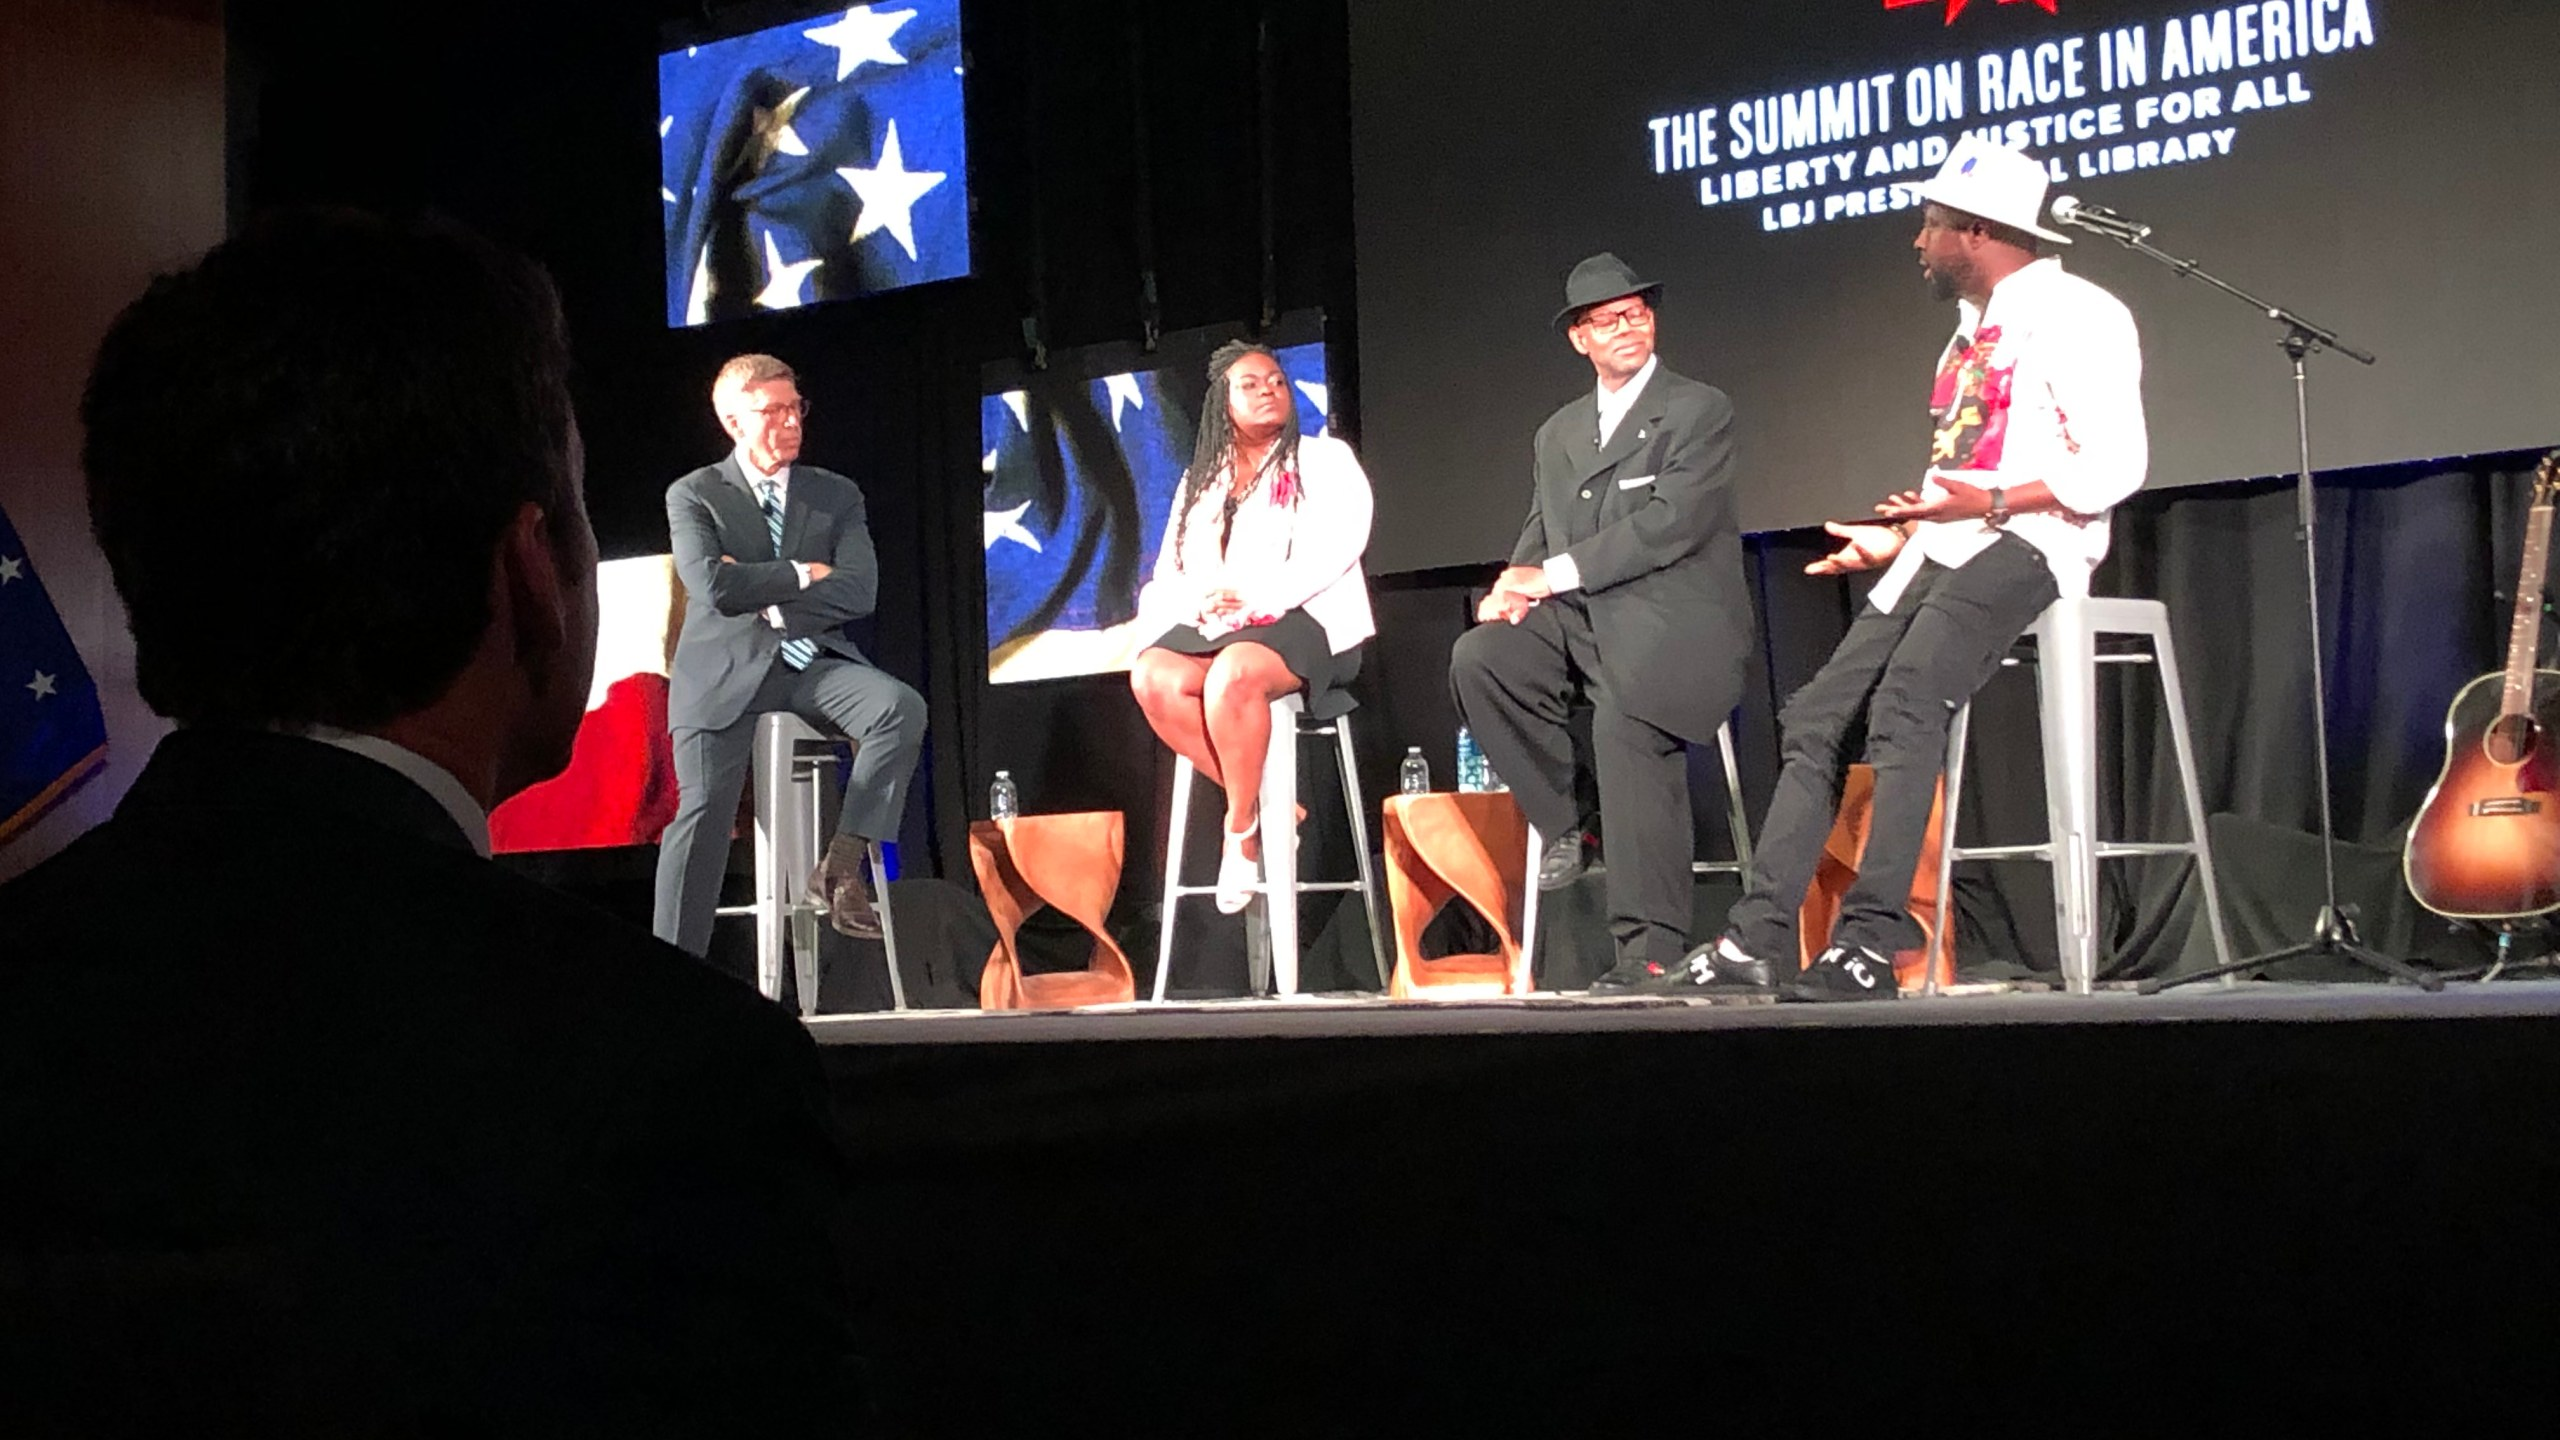 LBJ Summit on Race music panel